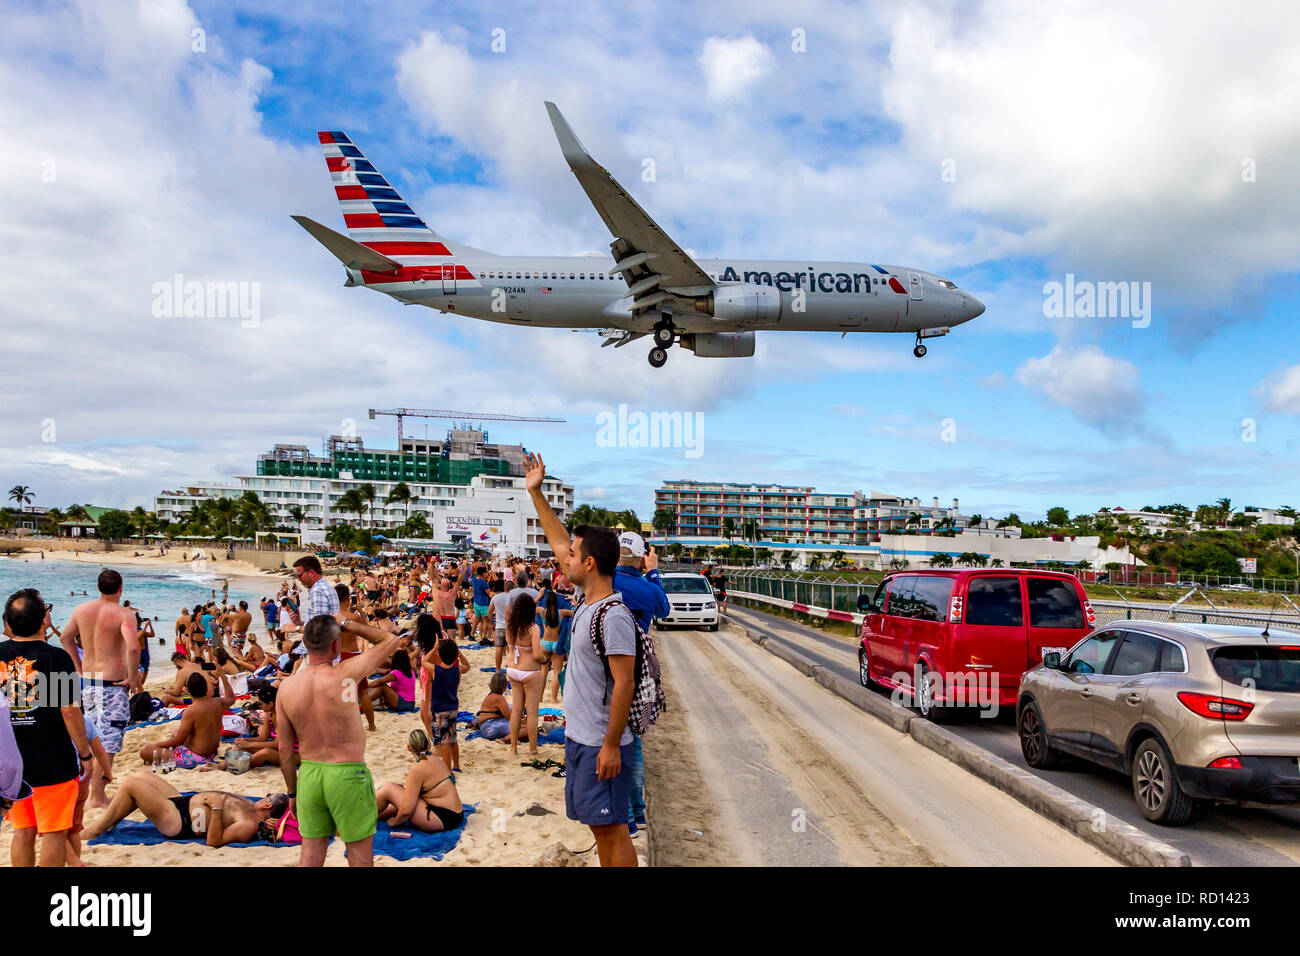 Caribbean Airlines Plane Stock Photos Amp Caribbean Airlines